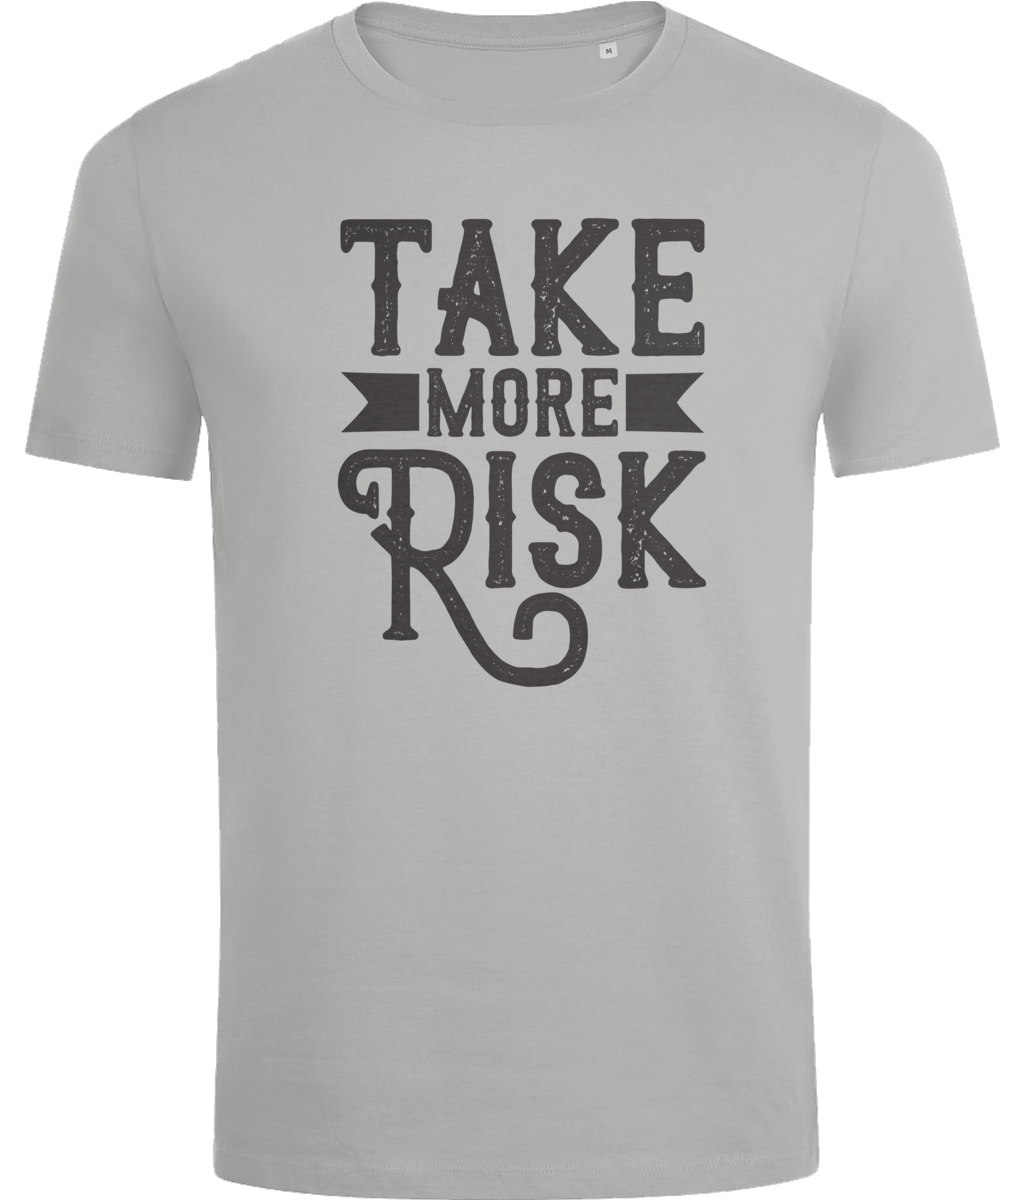 Take More Risk T-Shirt